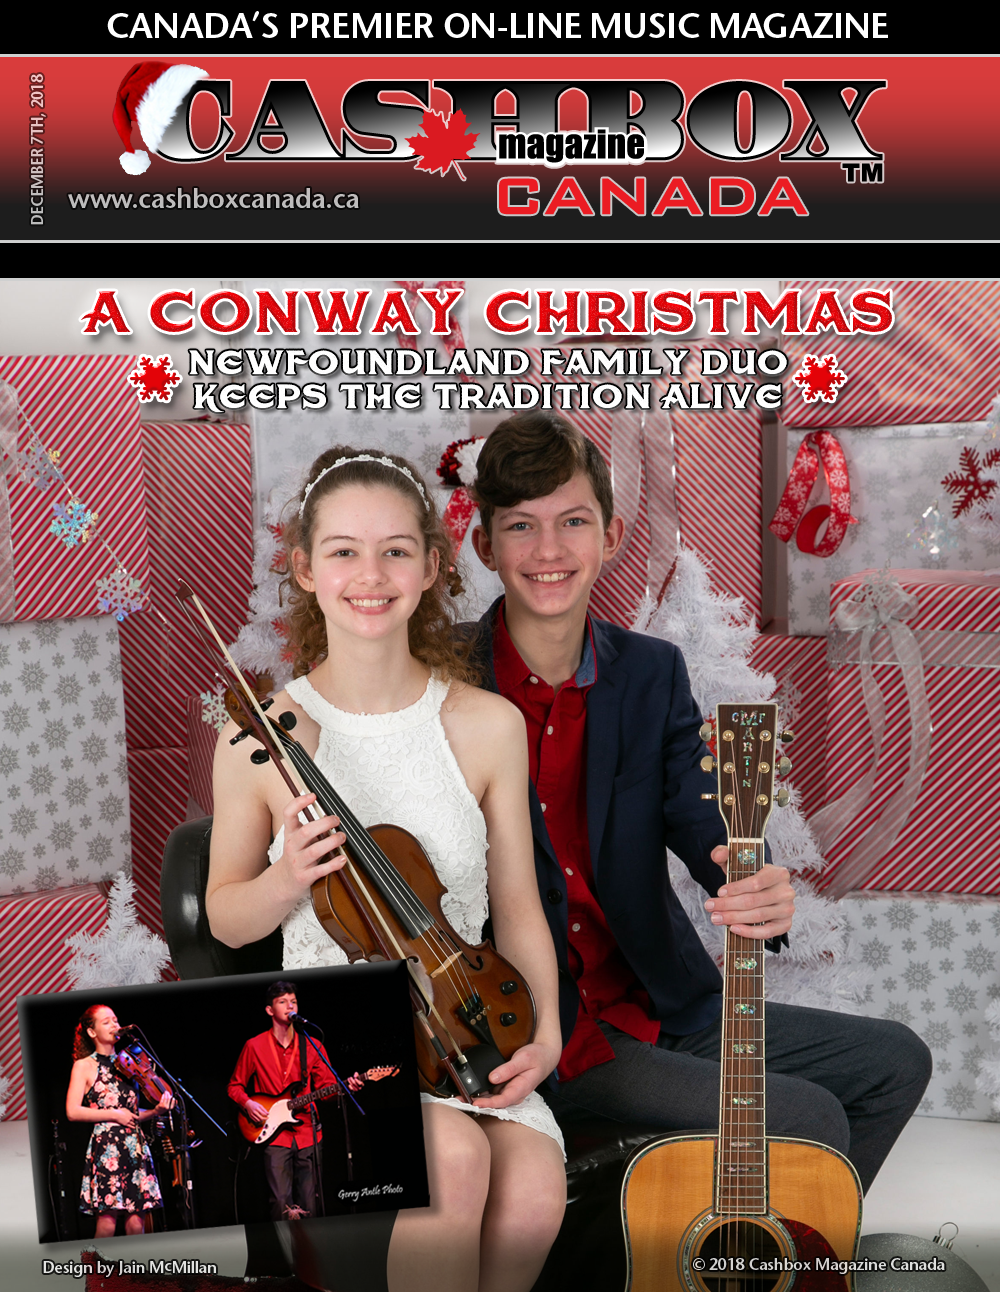 A Conway Christmas - Newfoundland Family Duo Keeps the Tradition Alive